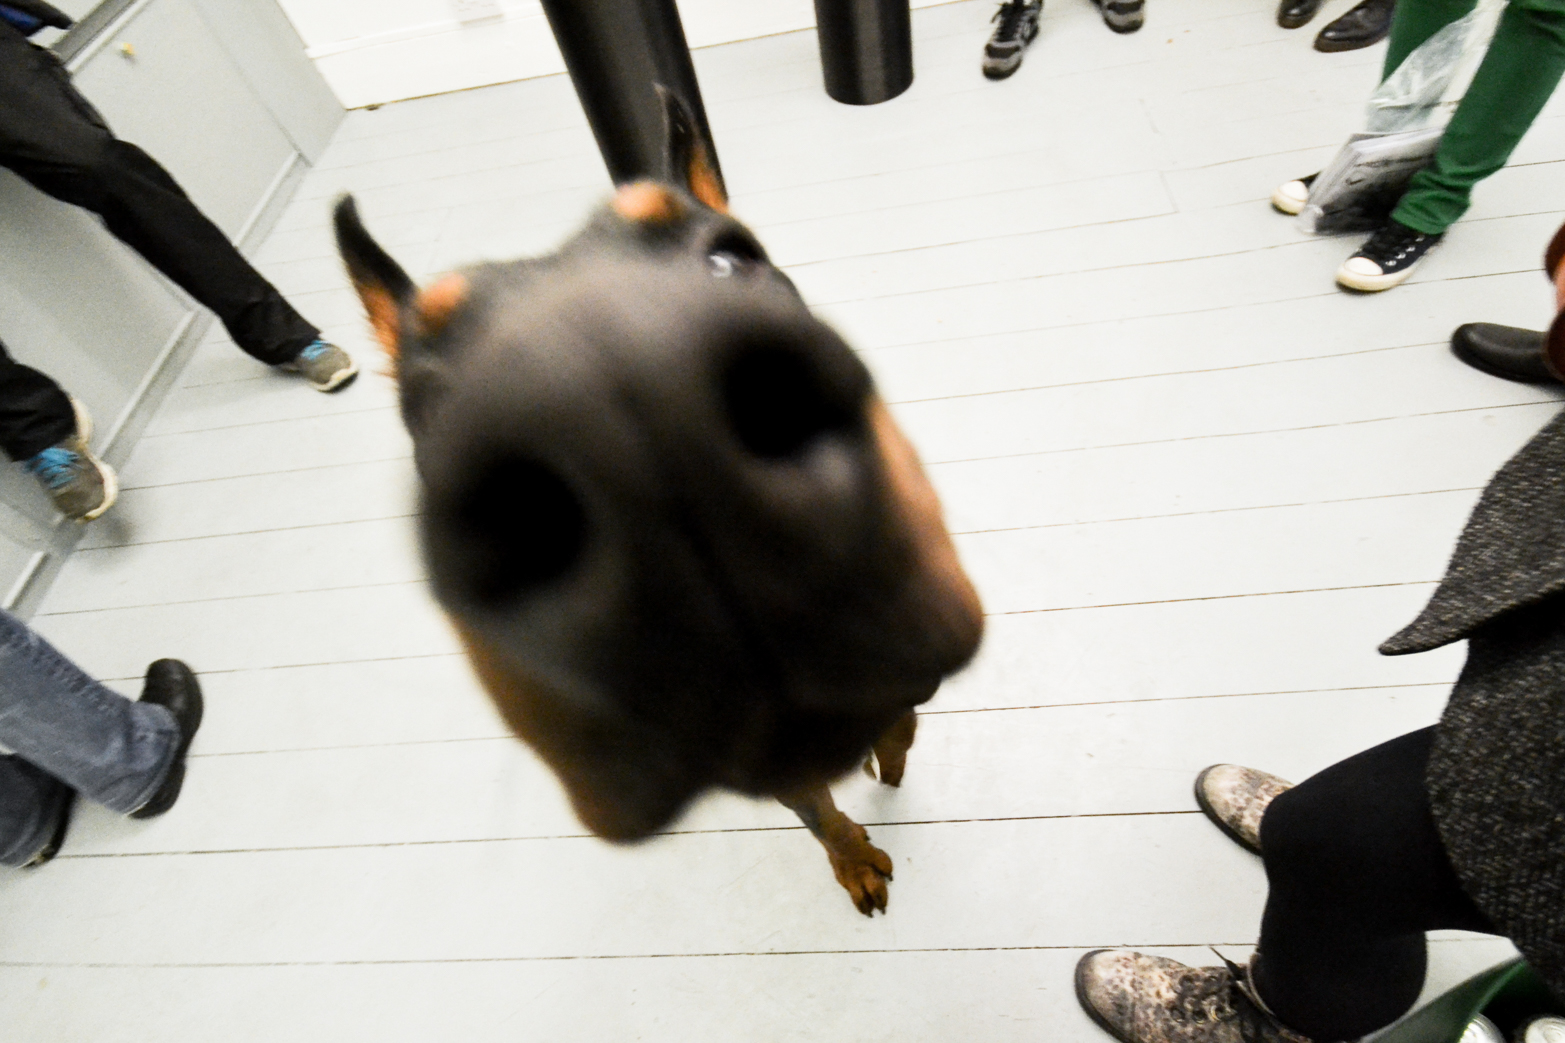 Private View, Performance with trained doberman dog.